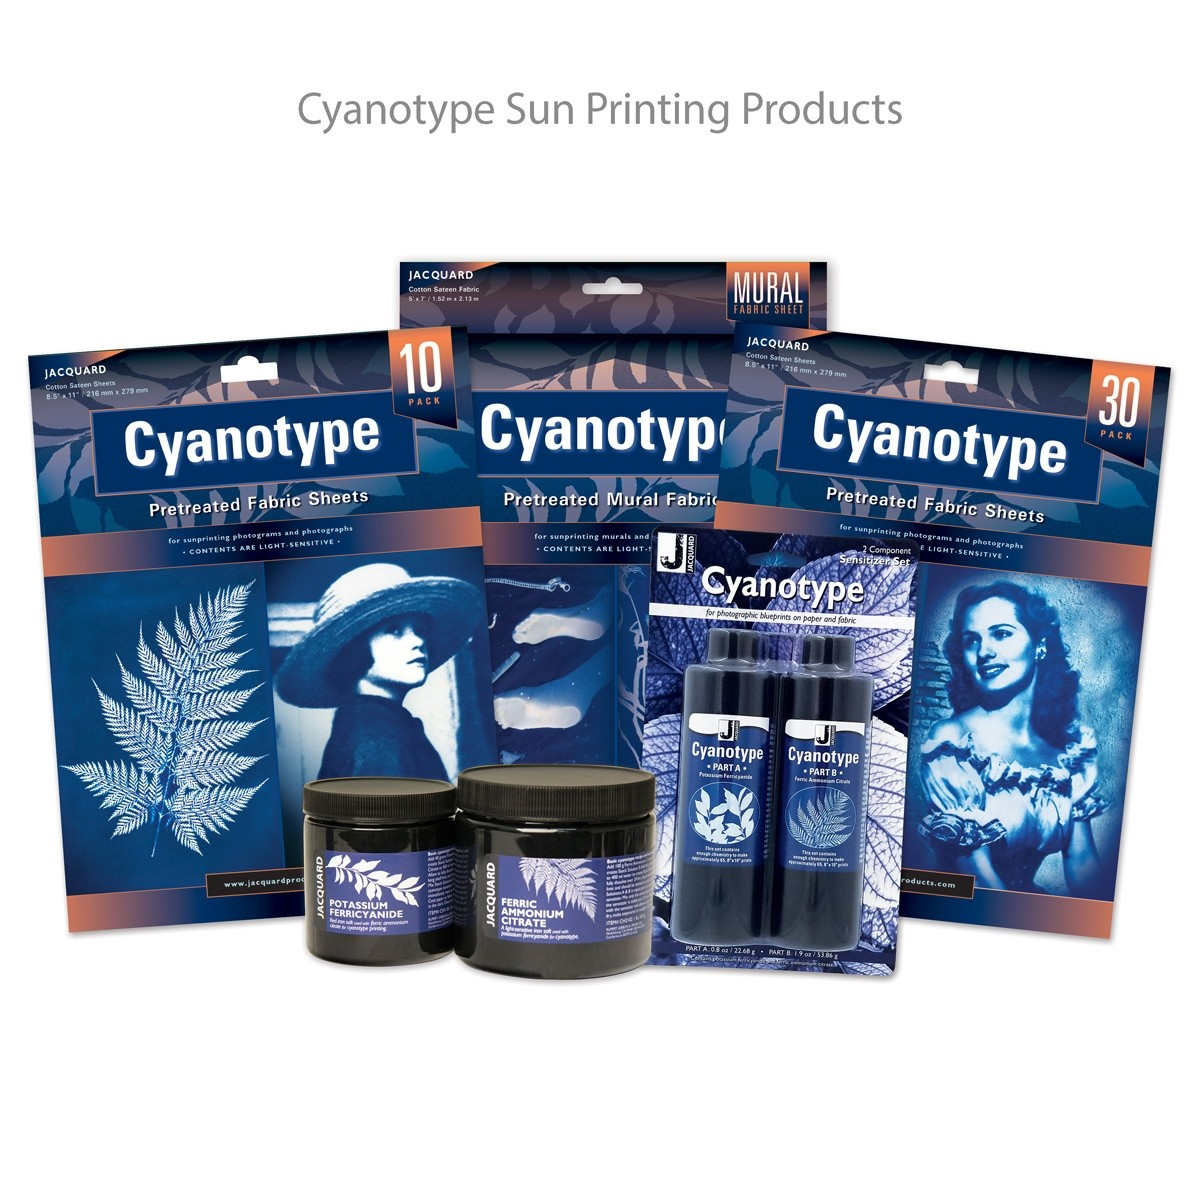 Jacquard Cyanotype Sun Printing Products